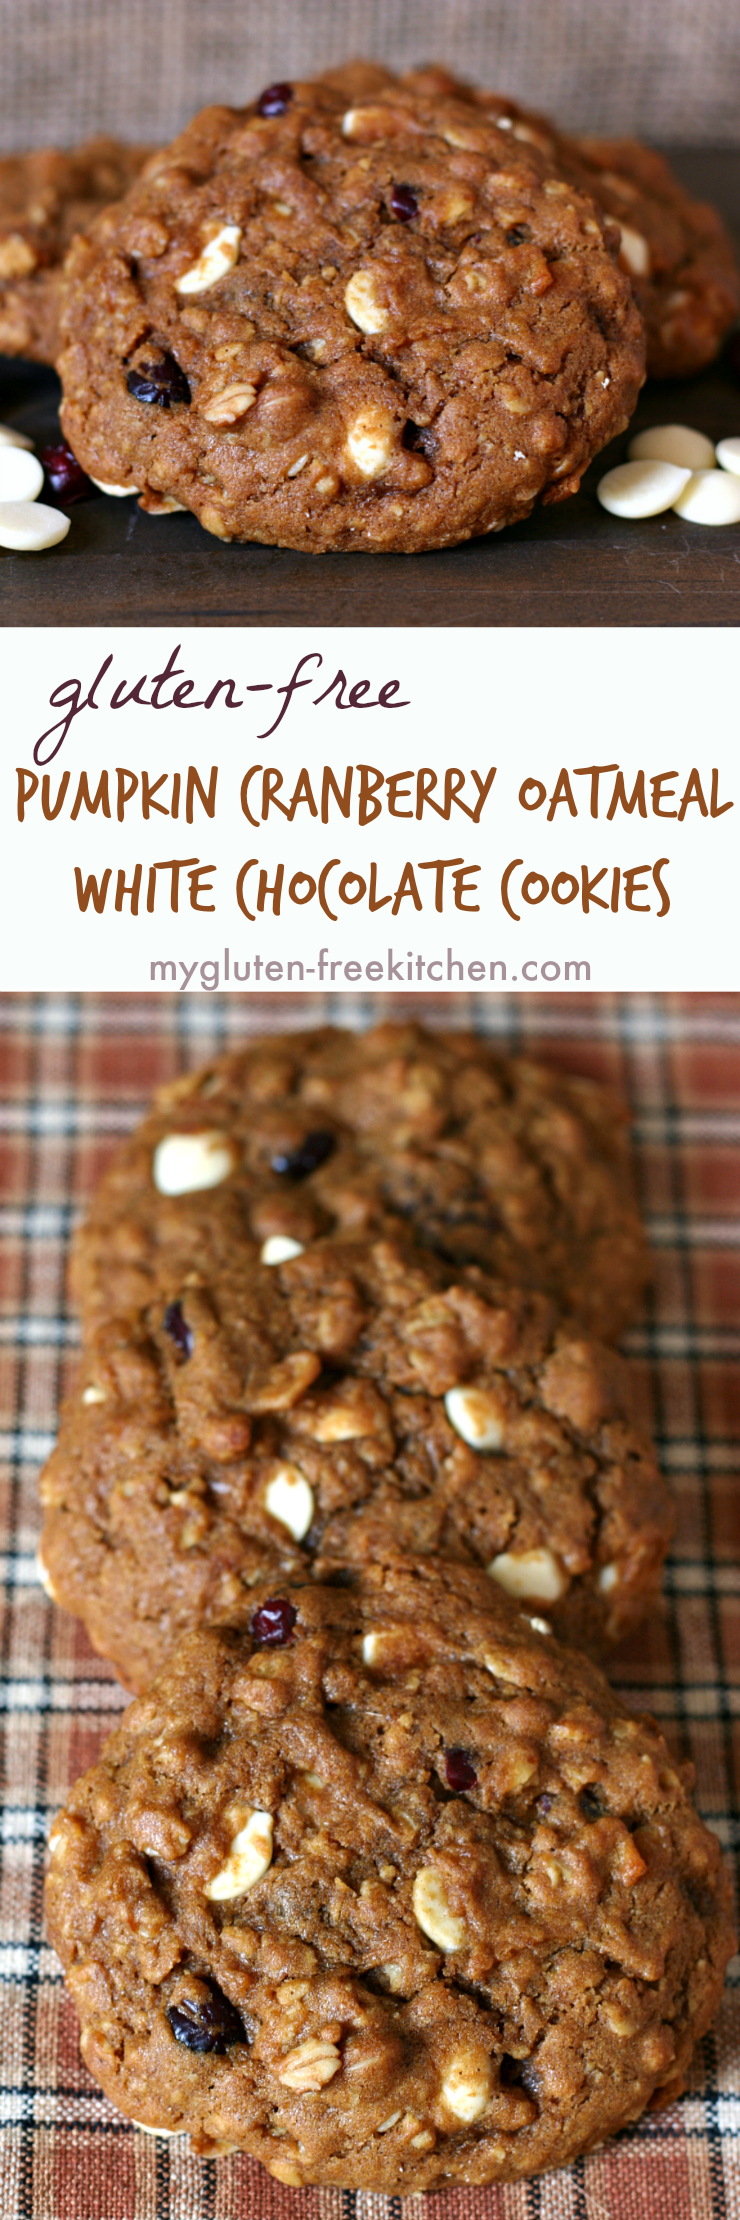 Gluten-free Pumpkin Cranberry Oatmeal White Chocolate Chip Cookies stack